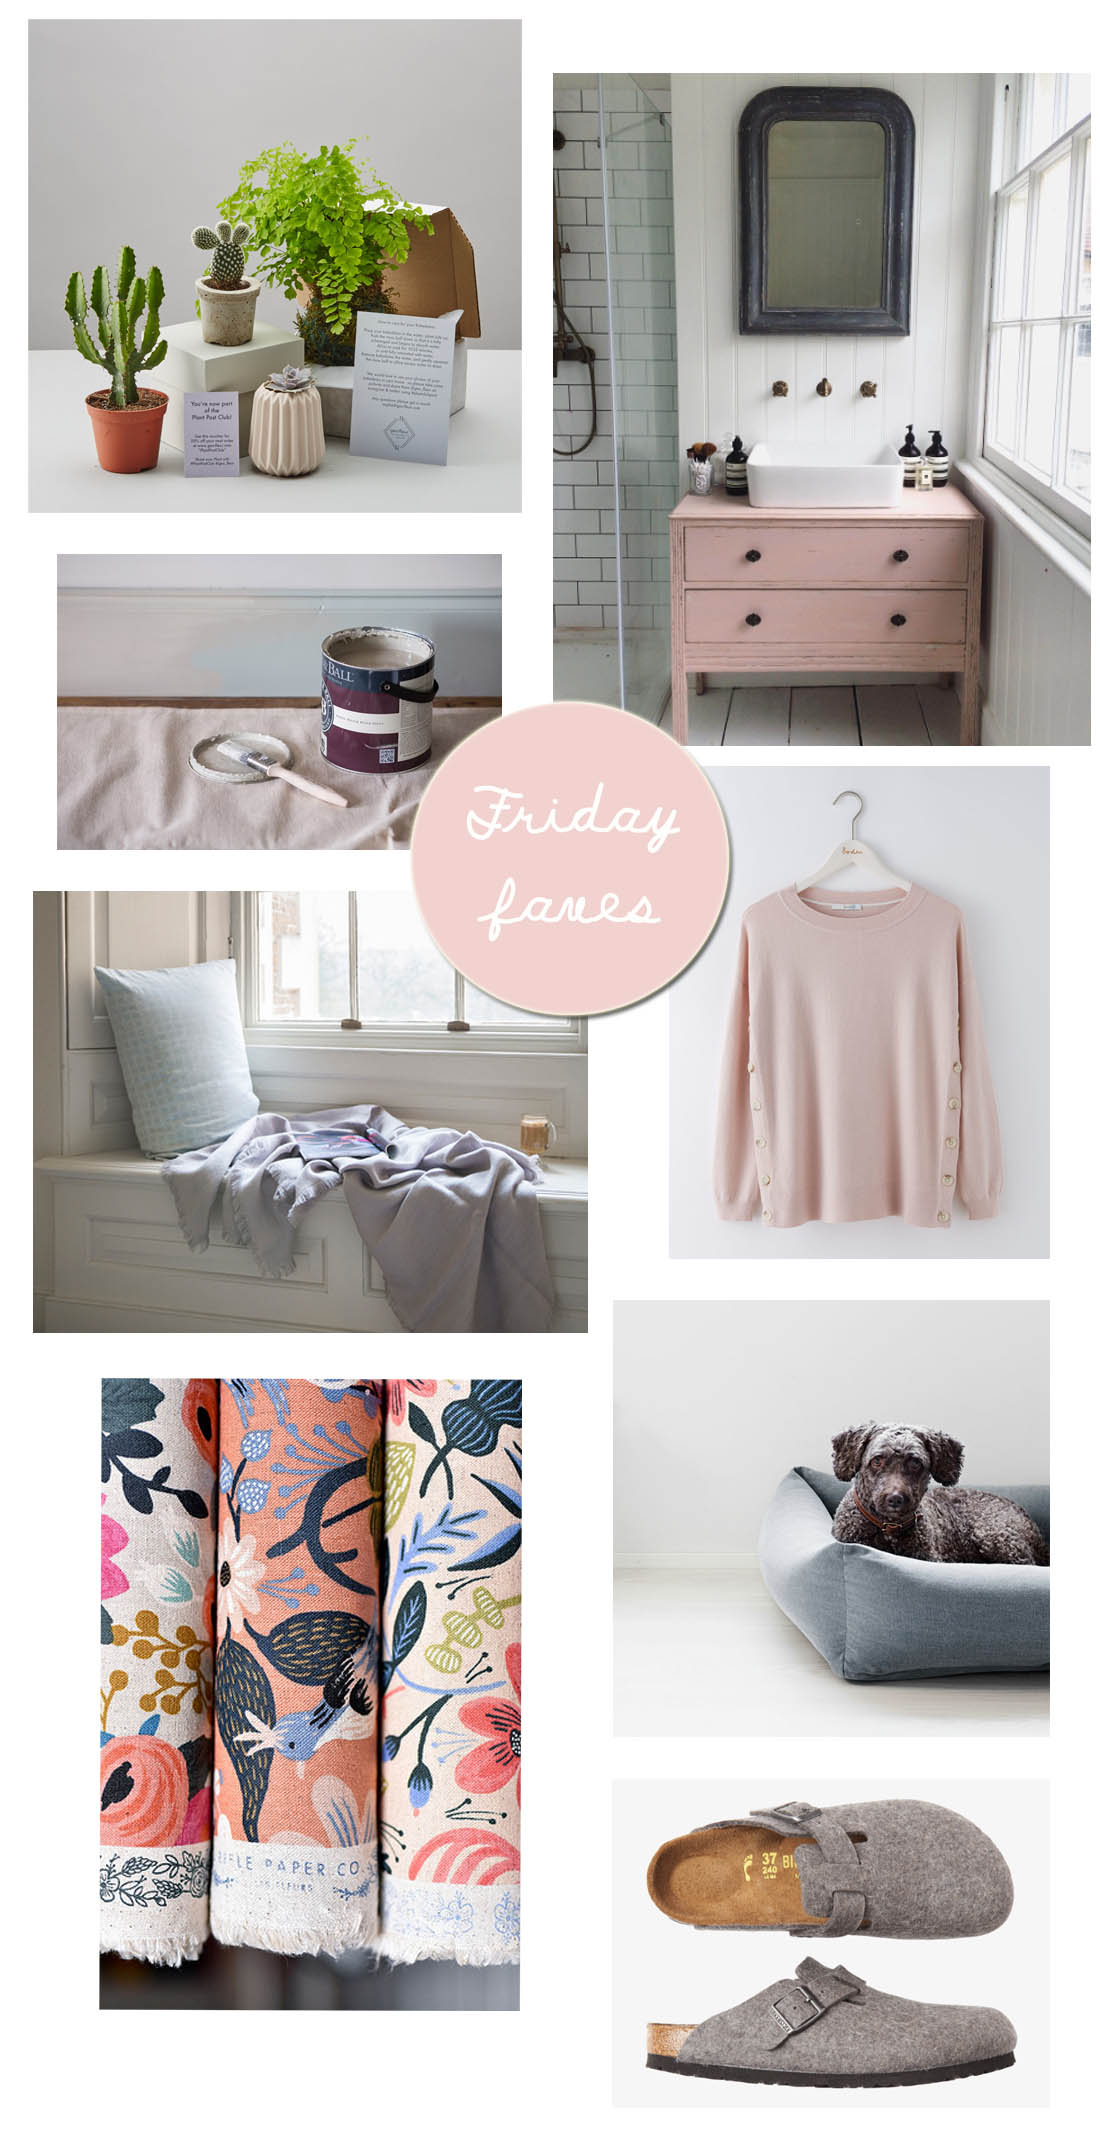 Friday faves | Apartment Apothecary